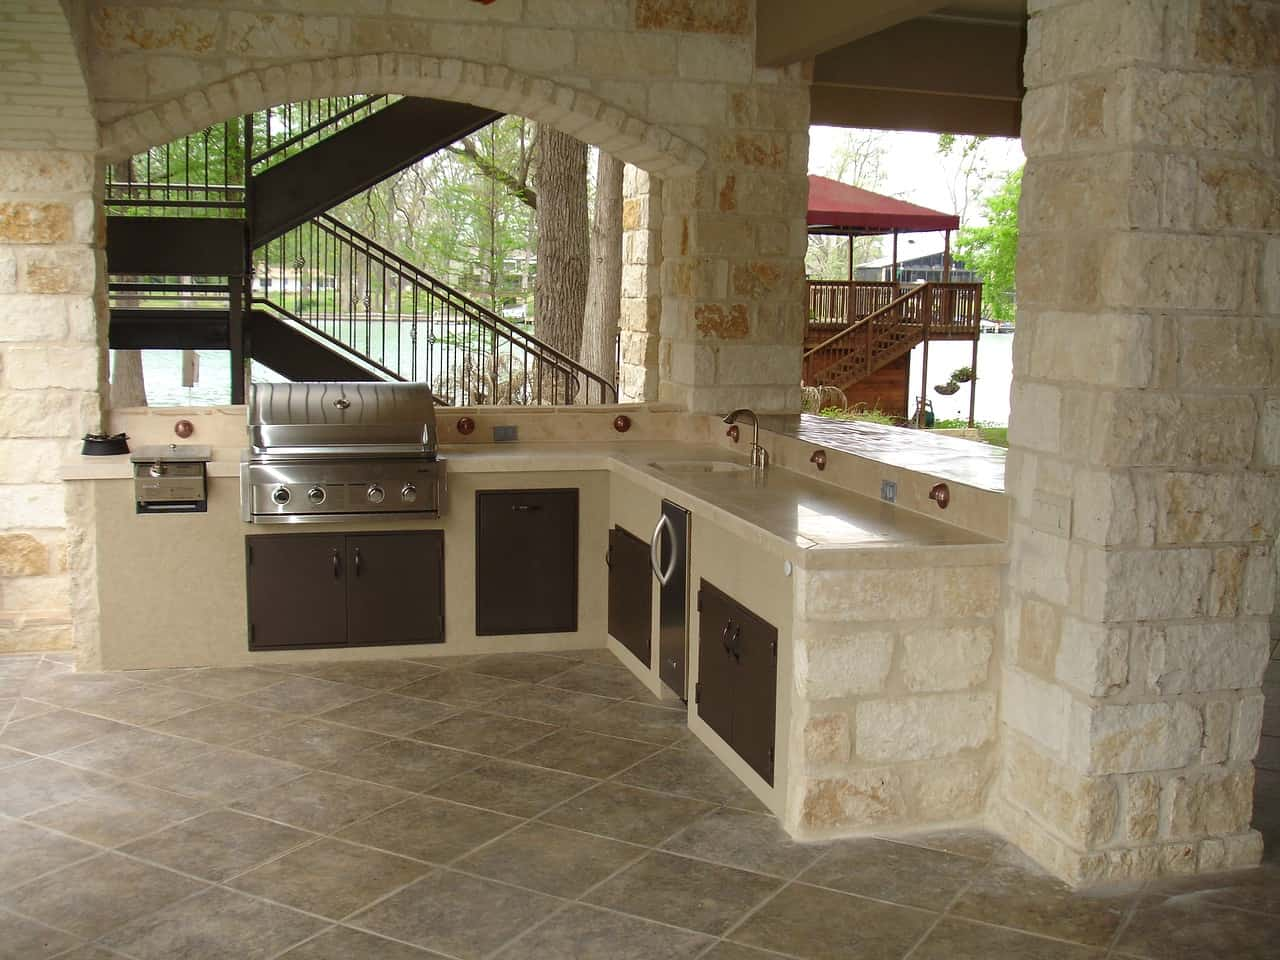 A Flagstone Patio Can Be an Outdoor Kitchen